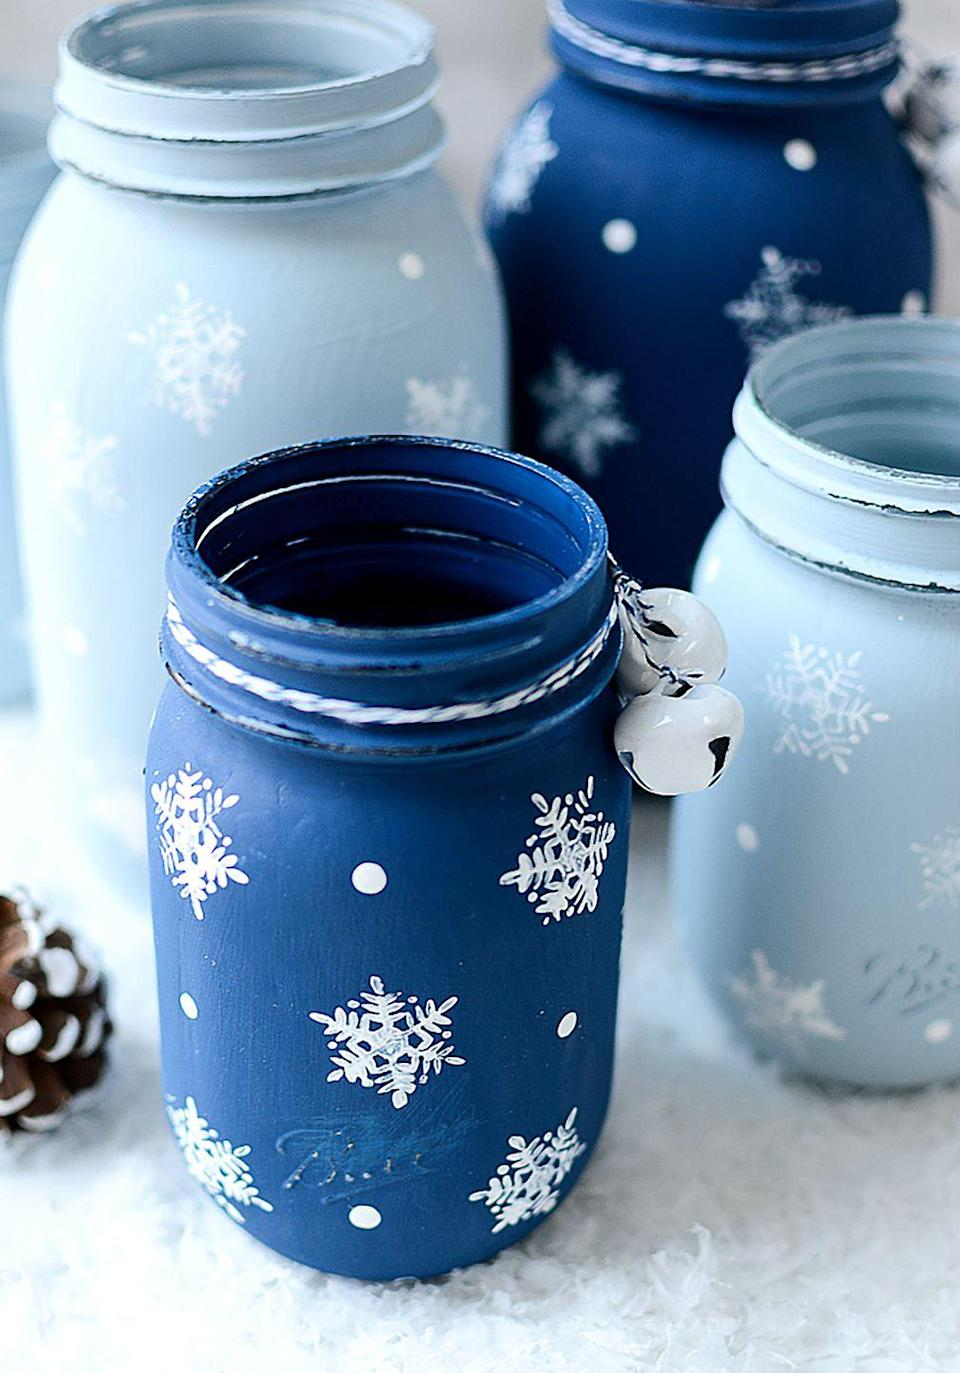 """<p>You can use these painted Mason jars as flower vases throughout the winter to bring a touch of color to your home. </p><p><strong>Get the tutorial at <a href=""""http://www.itallstartedwithpaint.com/snowflake-mason-jars/"""" rel=""""nofollow noopener"""" target=""""_blank"""" data-ylk=""""slk:It All Started With Paint"""" class=""""link rapid-noclick-resp"""">It All Started With Paint</a>. </strong></p><p><a class=""""link rapid-noclick-resp"""" href=""""https://www.amazon.com/ADC-21-Americana-Chalky-Finish-8-Ounce/dp/B00HQKCPVO/?tag=syn-yahoo-20&ascsubtag=%5Bartid%7C10050.g.2132%5Bsrc%7Cyahoo-us"""" rel=""""nofollow noopener"""" target=""""_blank"""" data-ylk=""""slk:SHOP CHALK PAINT"""">SHOP CHALK PAINT</a></p>"""